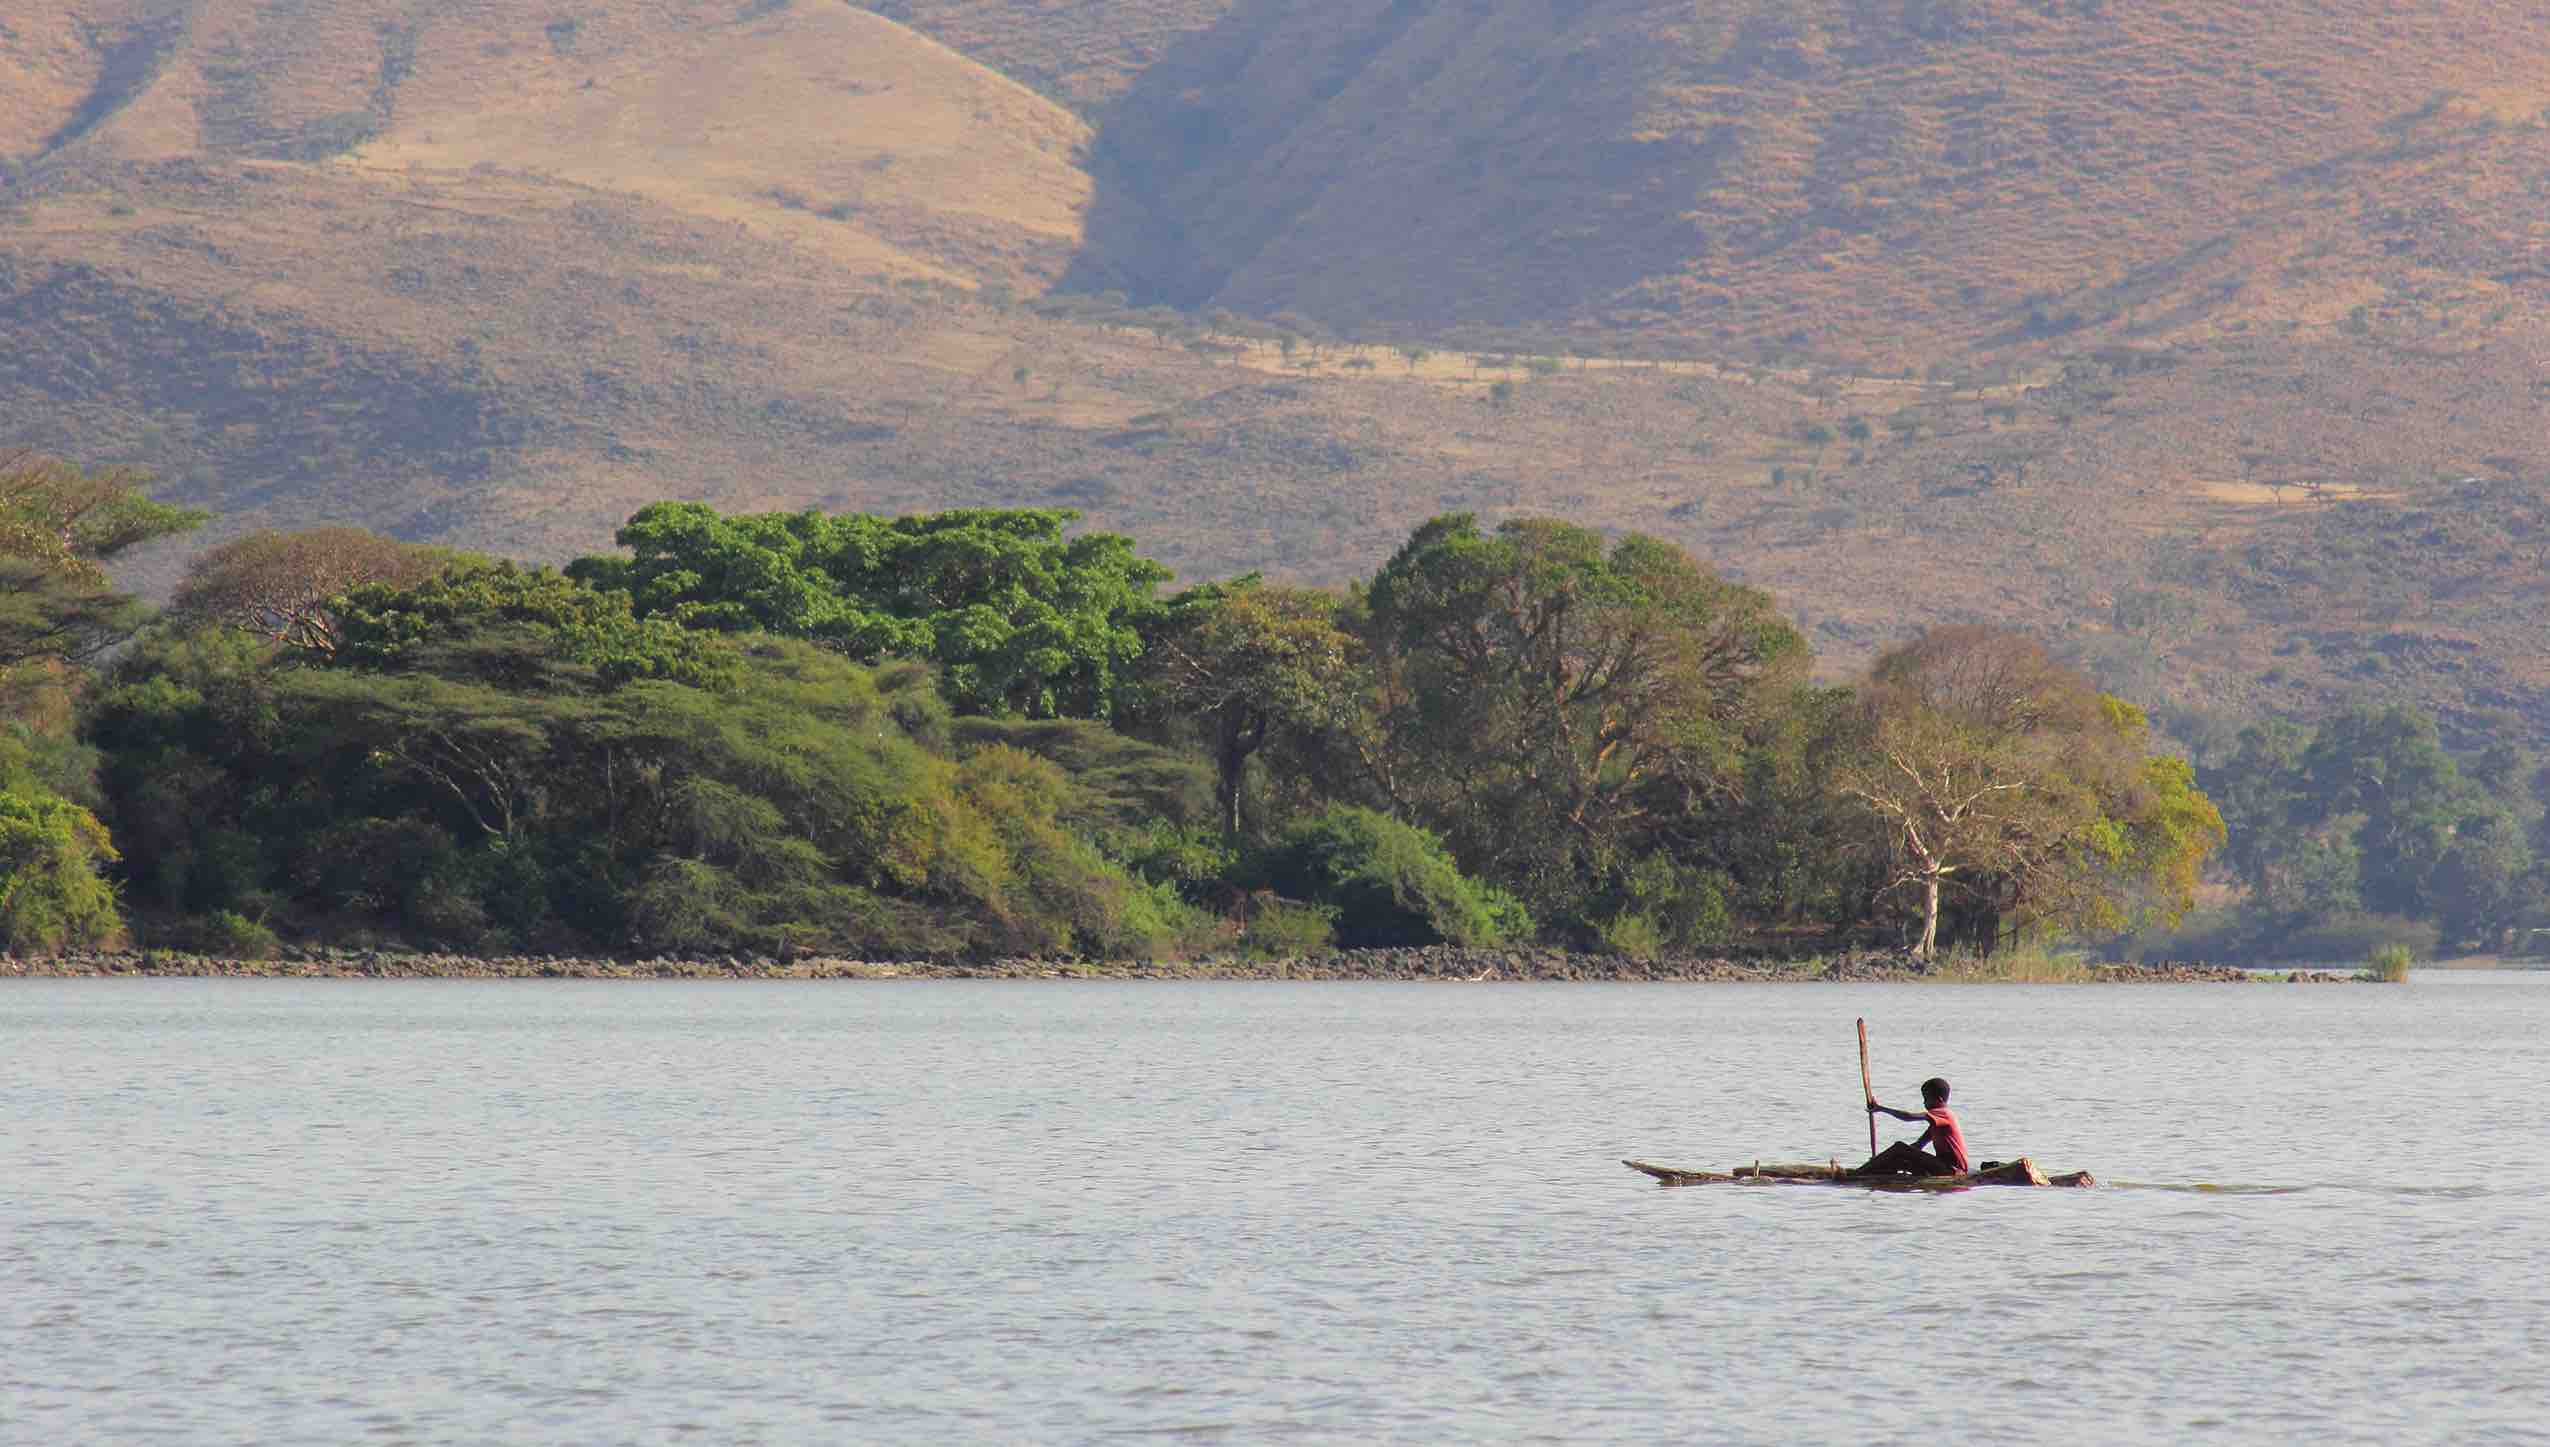 Crossing Lake Tana in the Amhara region of the Ethiopian highlands using a traditional reed boat